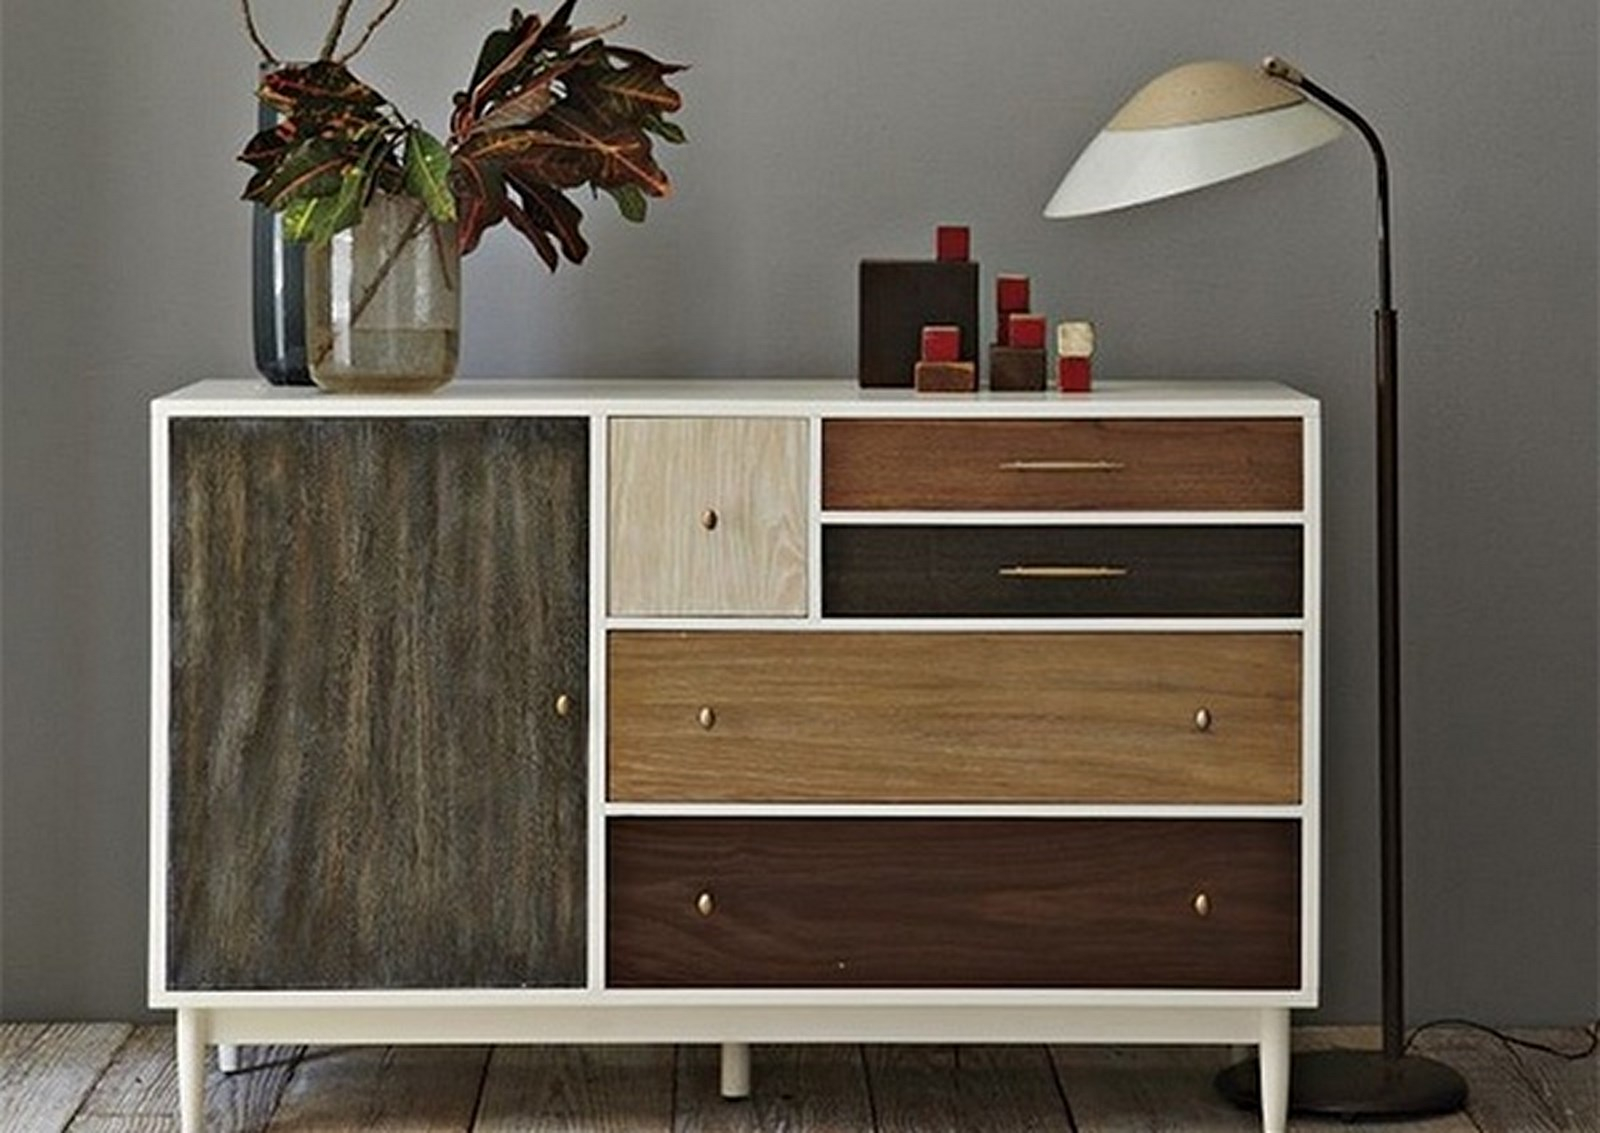 Amazing Modern Bedroom Dresser Furniture Ideas Ideas For inside 15 Some of the Coolest Ideas How to Make Modern Bedroom Dressers